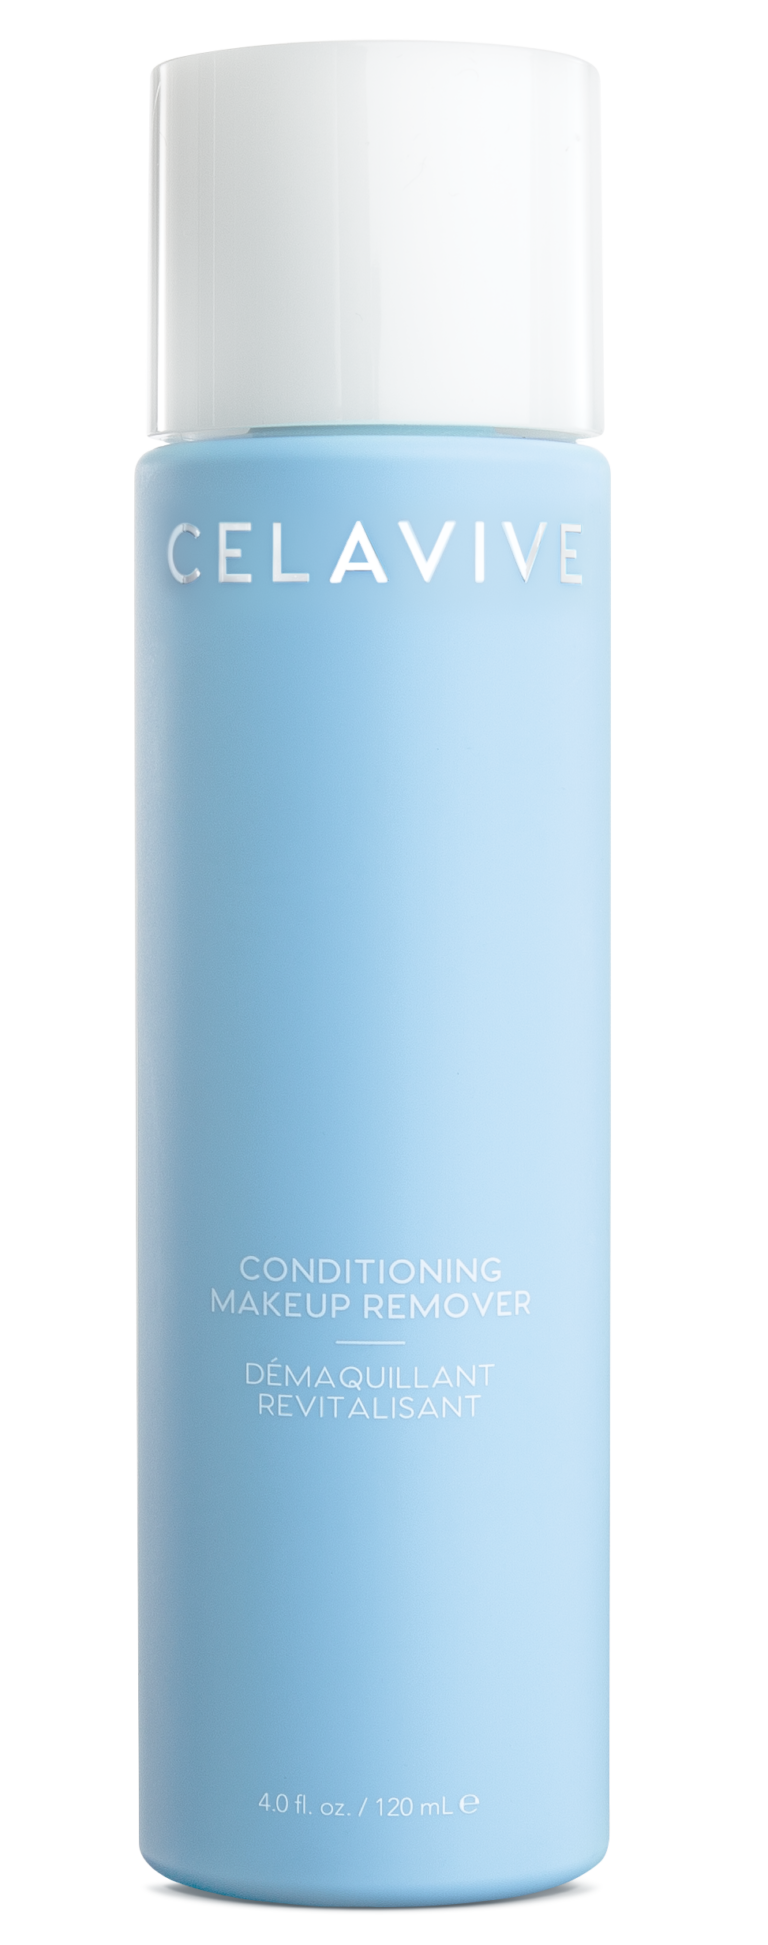 Celavive_ Conditioning Makeup Remover Image Only – Copy